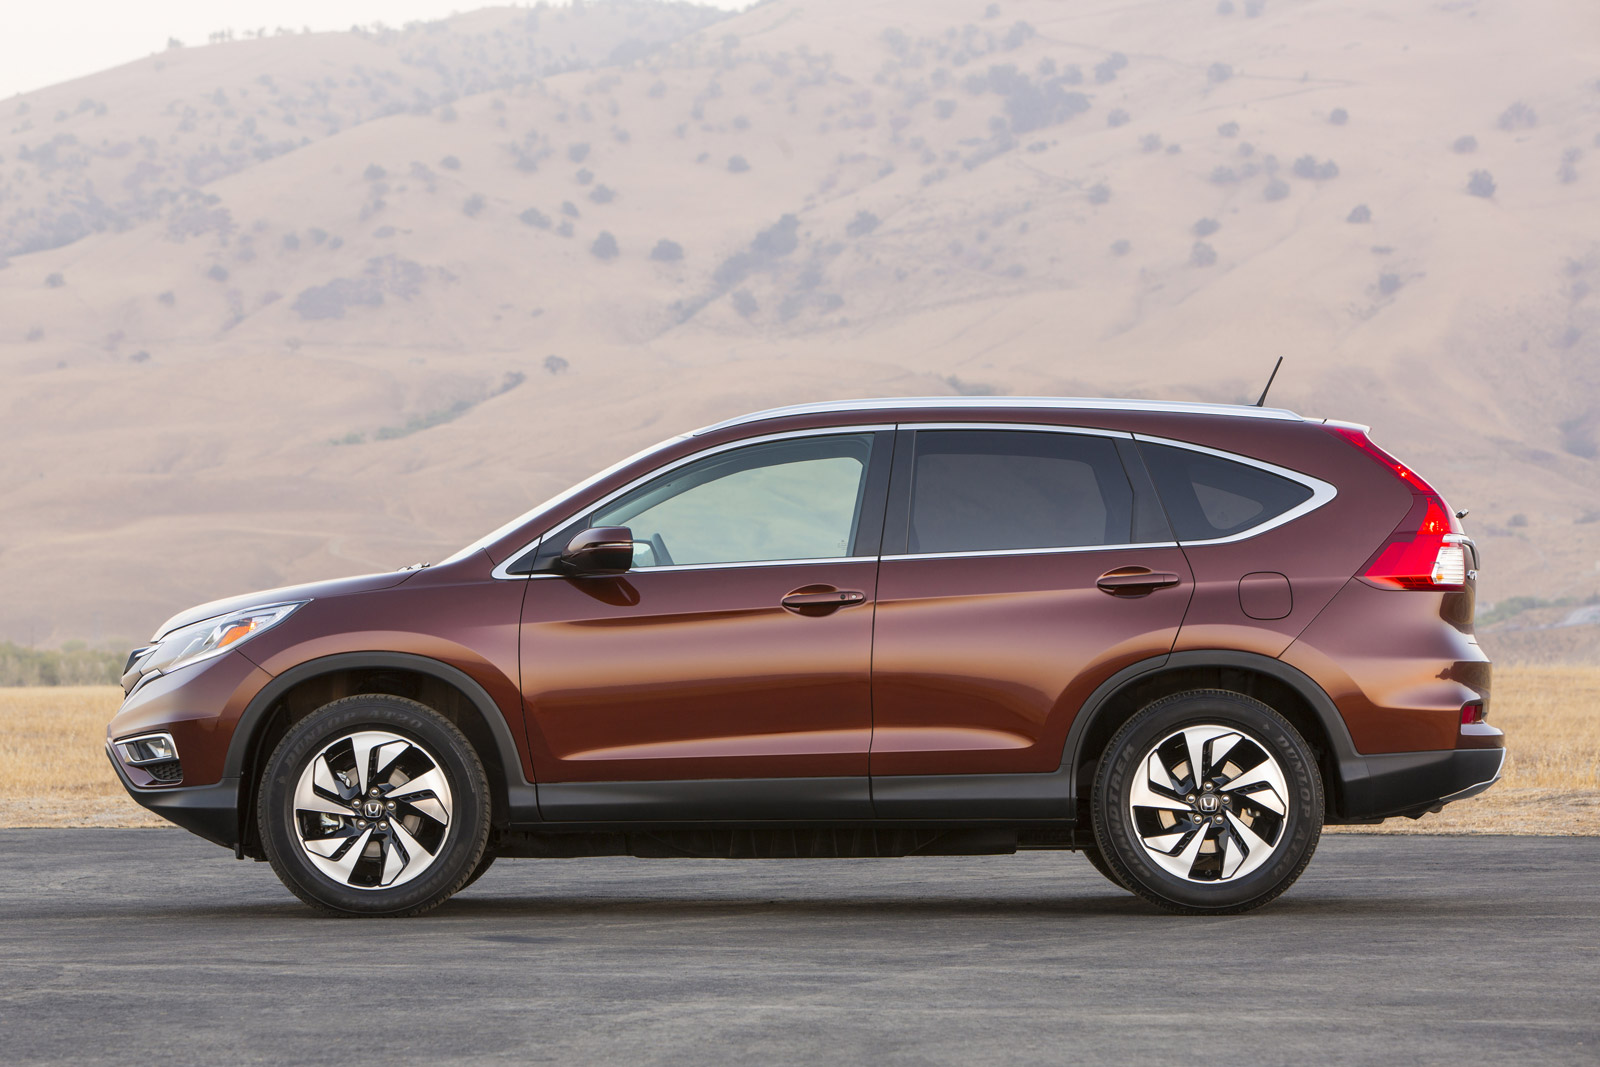 crossover news oct mileage cr v h updated test michigan southeast gas suv of honda